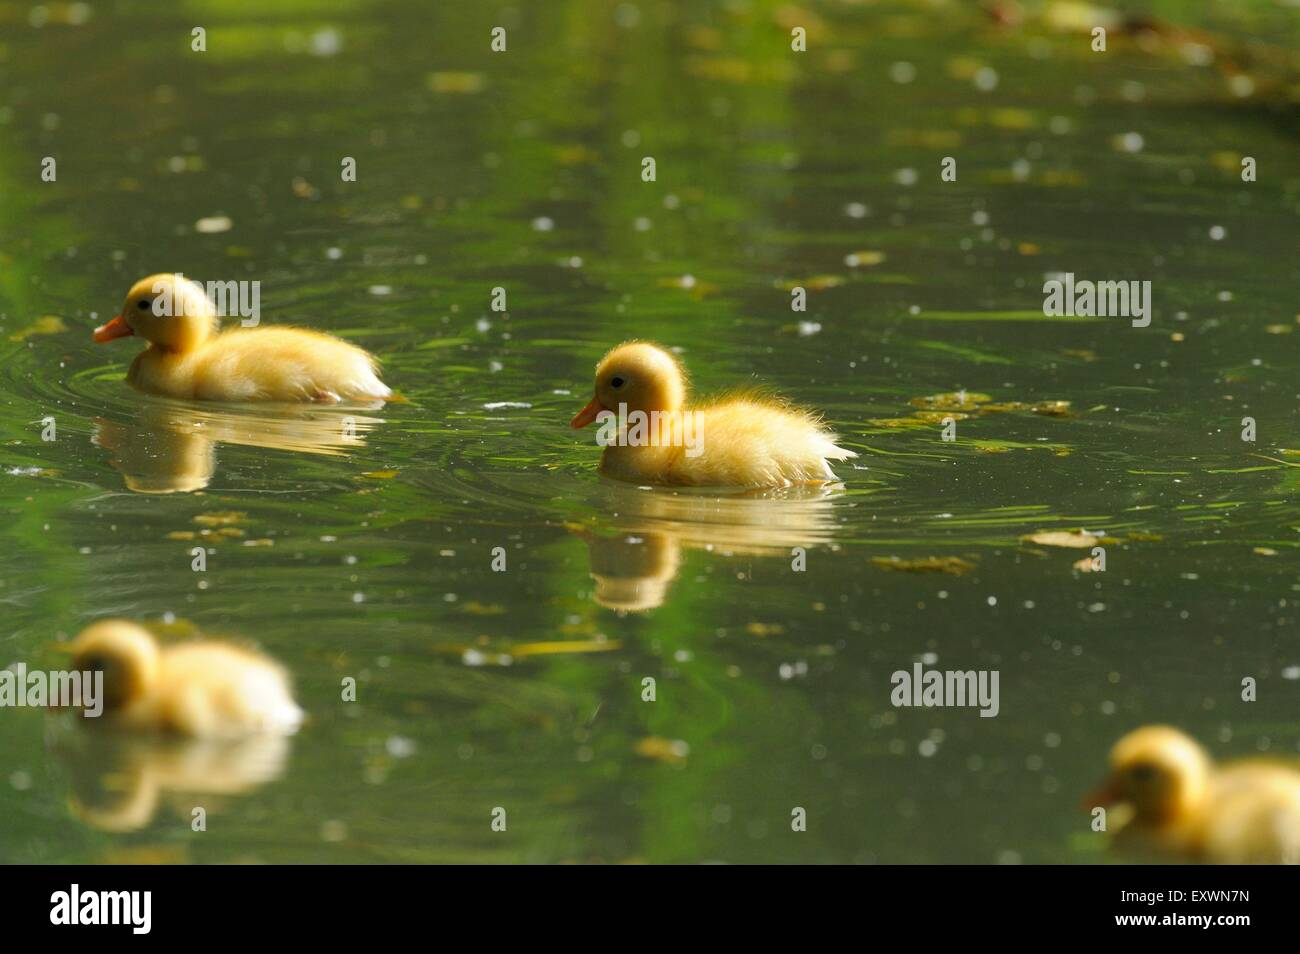 Long Island duck chicks in water - Stock Image